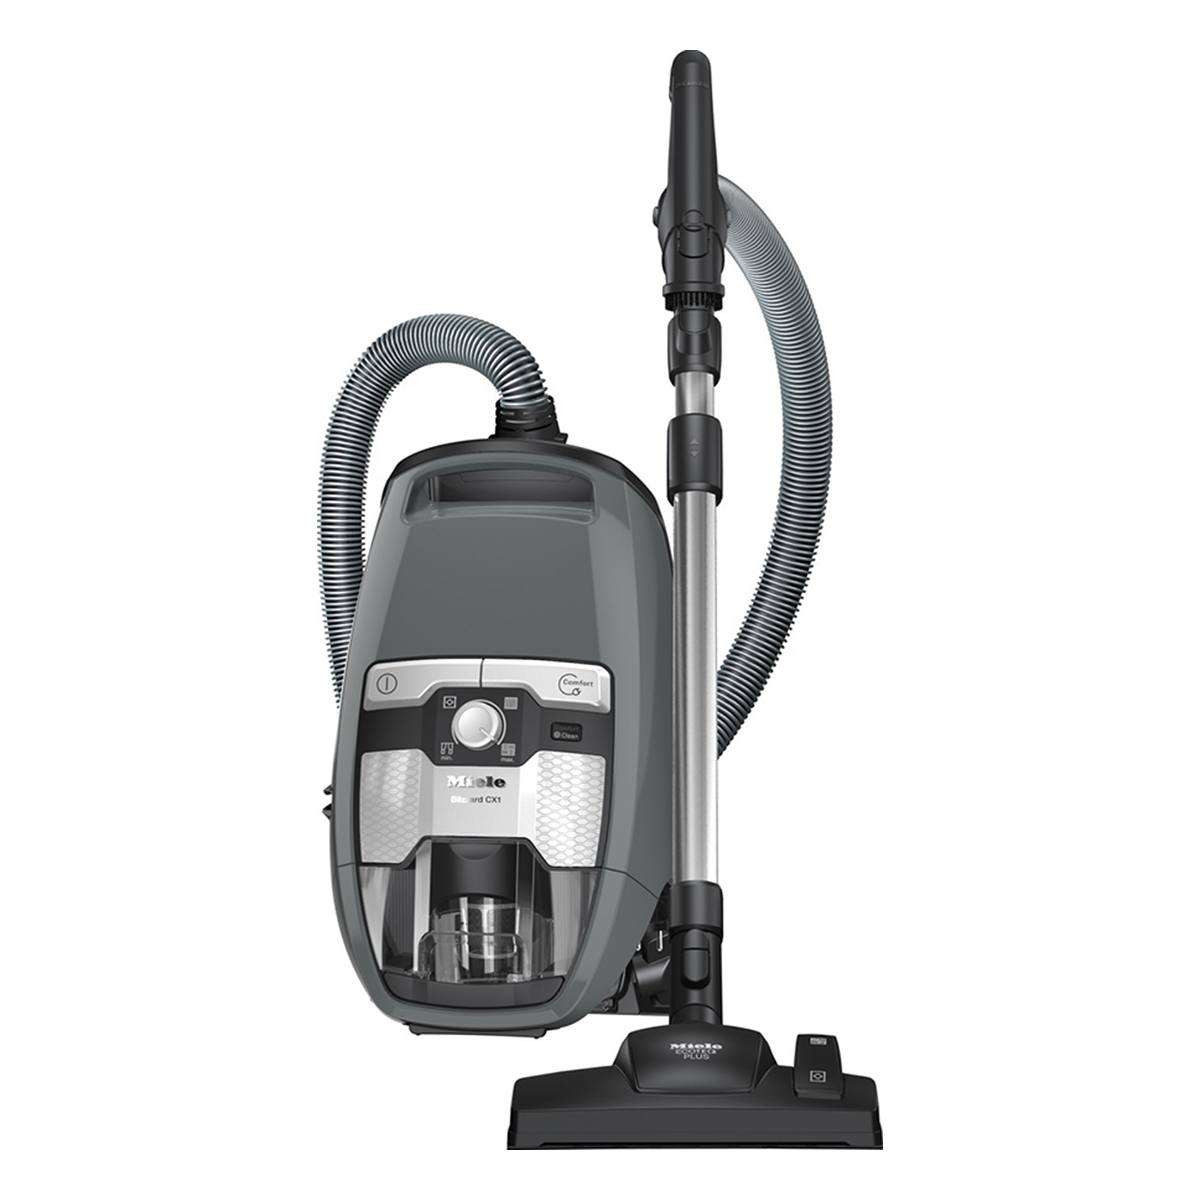 miele vacuum hardwood floor attachment of miele blizzard cx1 excellence powerline skcf3 bagless cylinder with regard to miele blizzard cx1 excellence powerline skcf3 bagless cylinder vacuum cleaner with eco comfort handle hughes